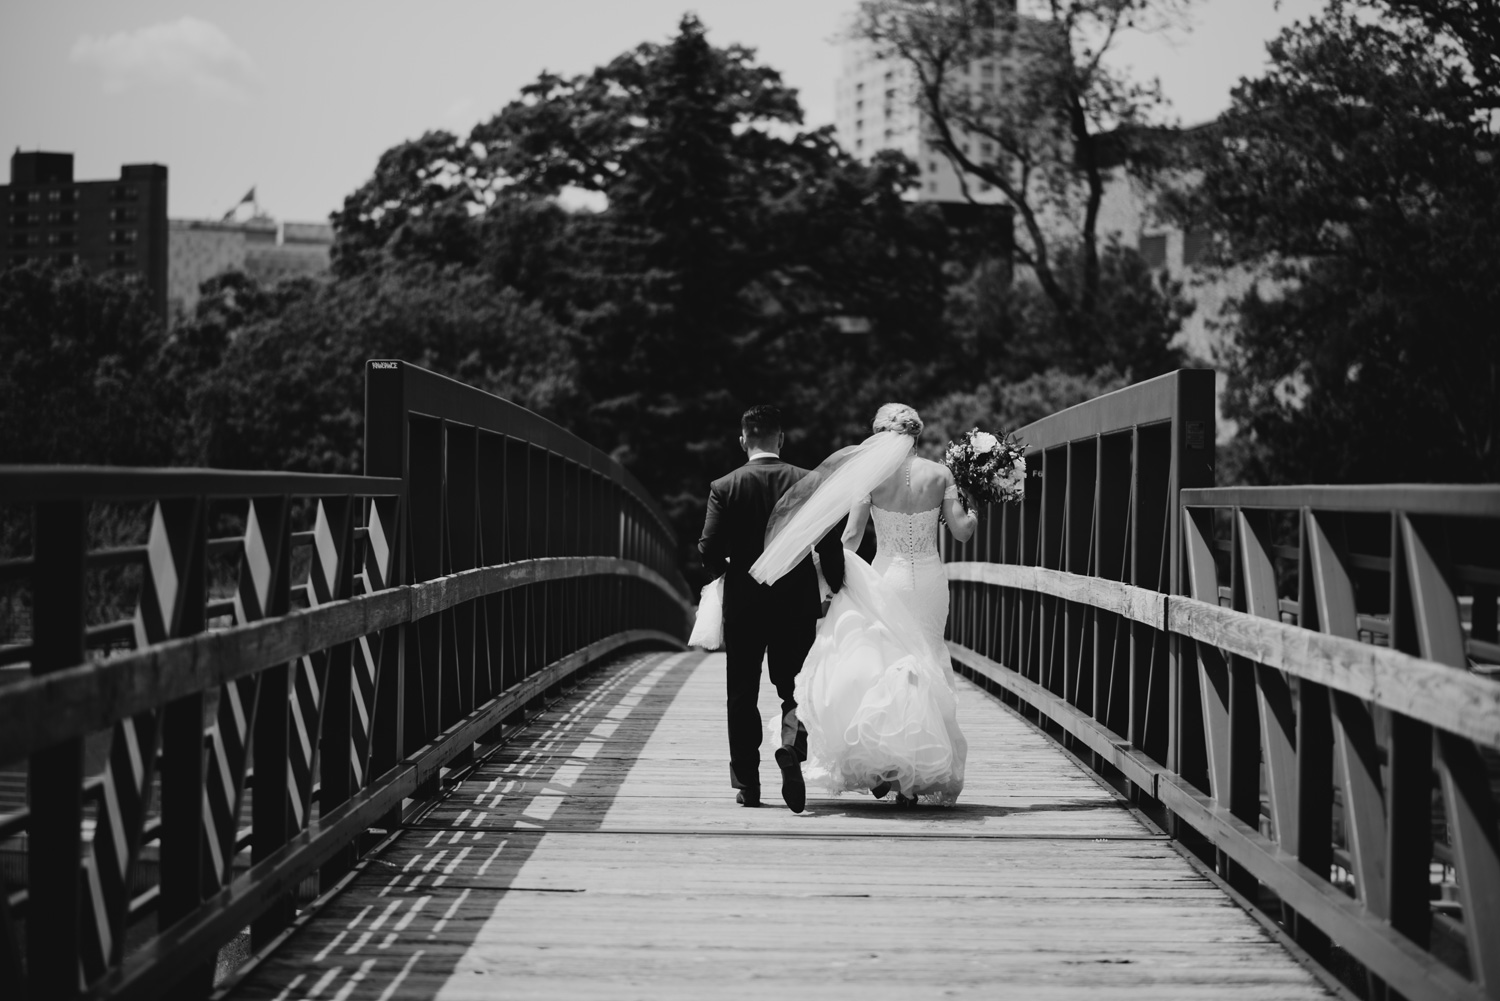 Bride and groom walking on bridge black and white